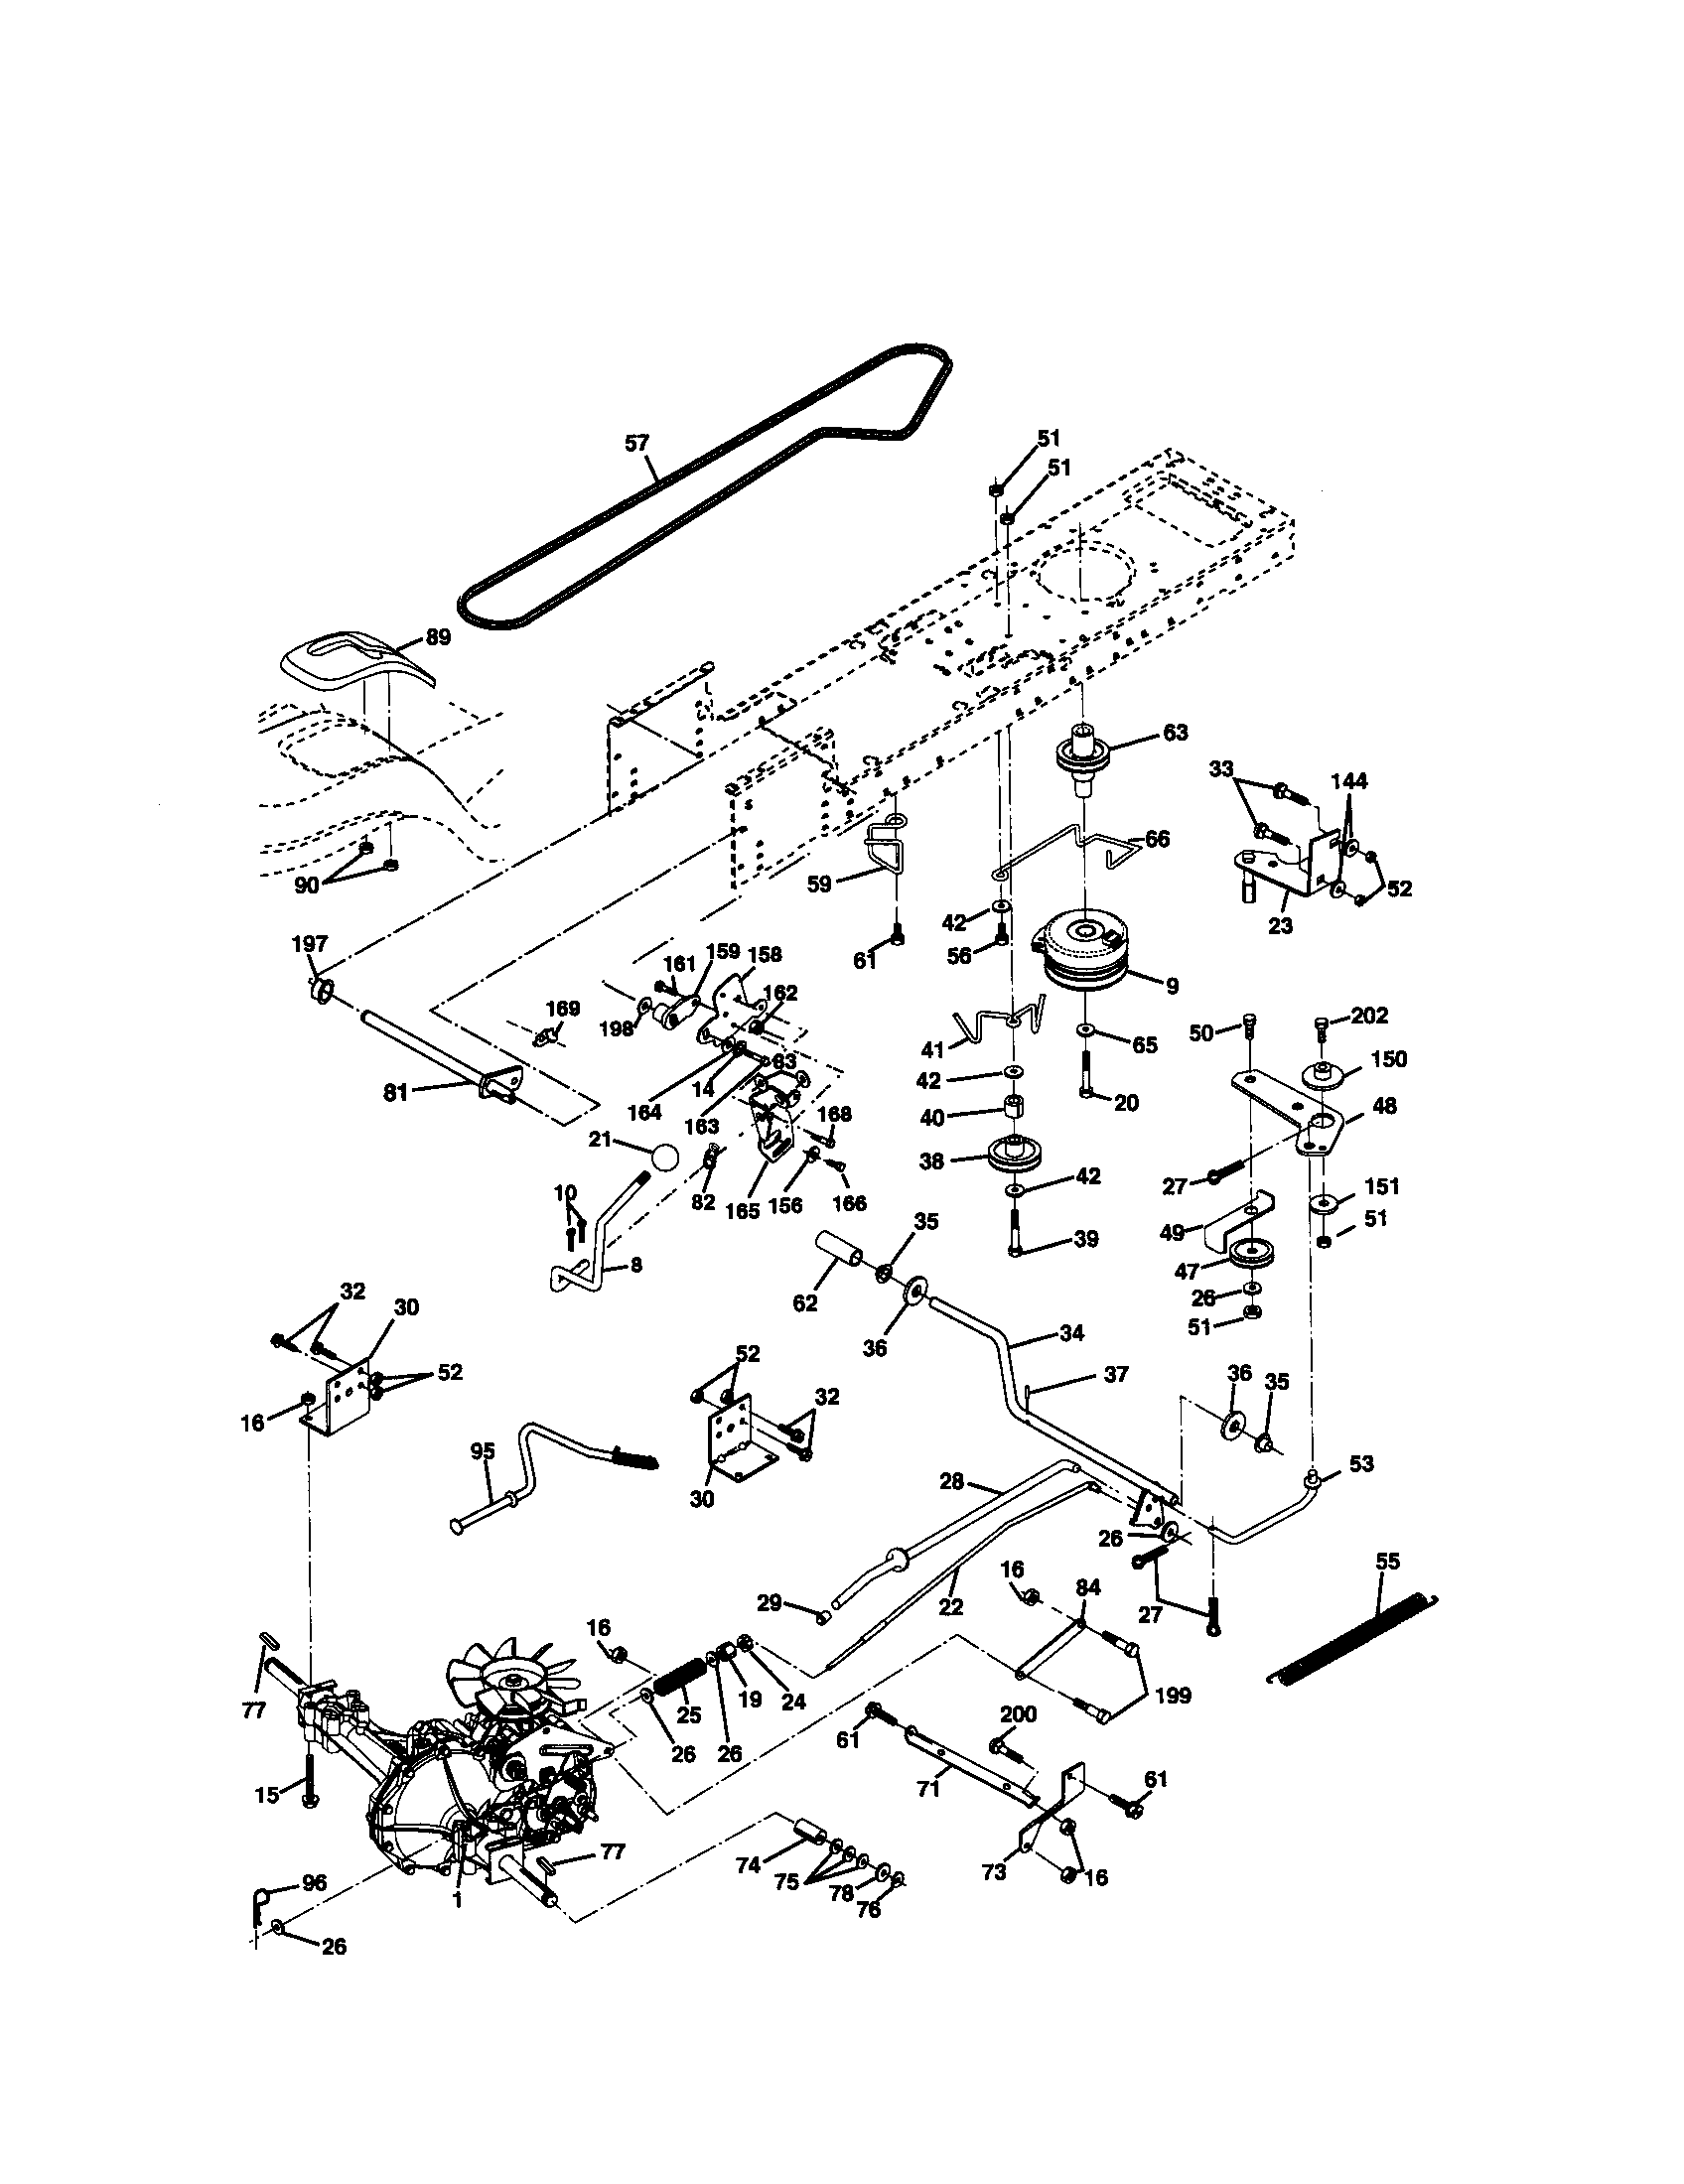 Craftsman lawn tractor parts model 917272220 sears partsdirect on kohler 15 5 engine diagram